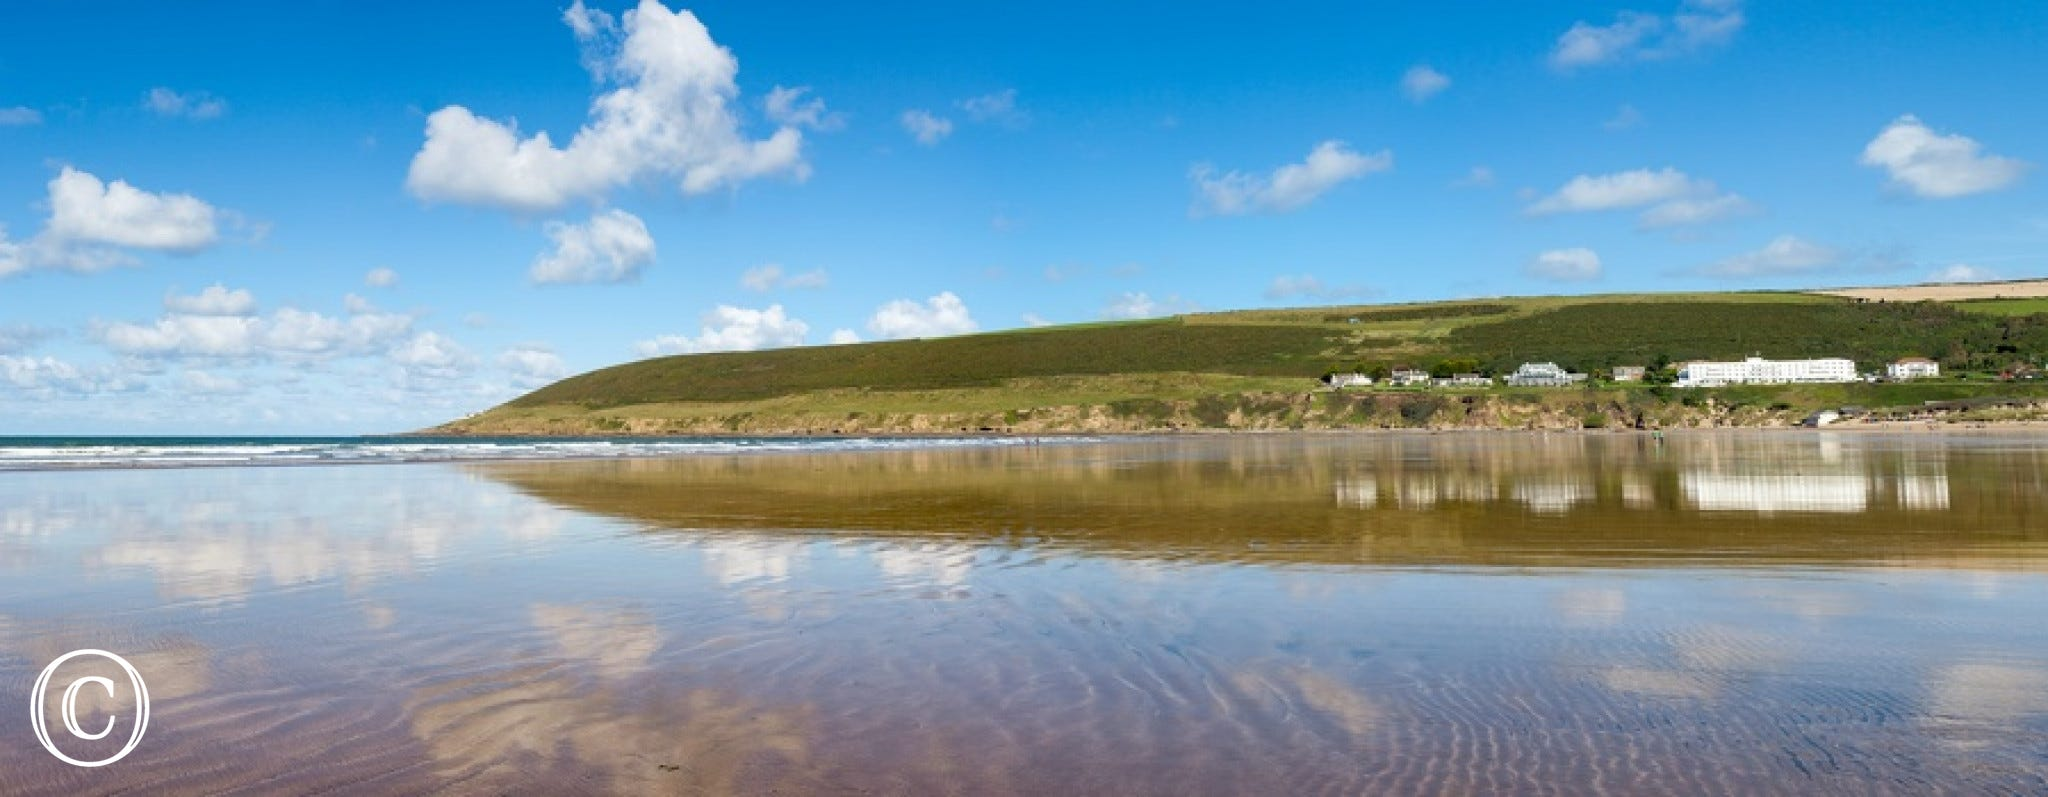 Panoramic View of Saunton Sands beach, just a 20 minute drive away